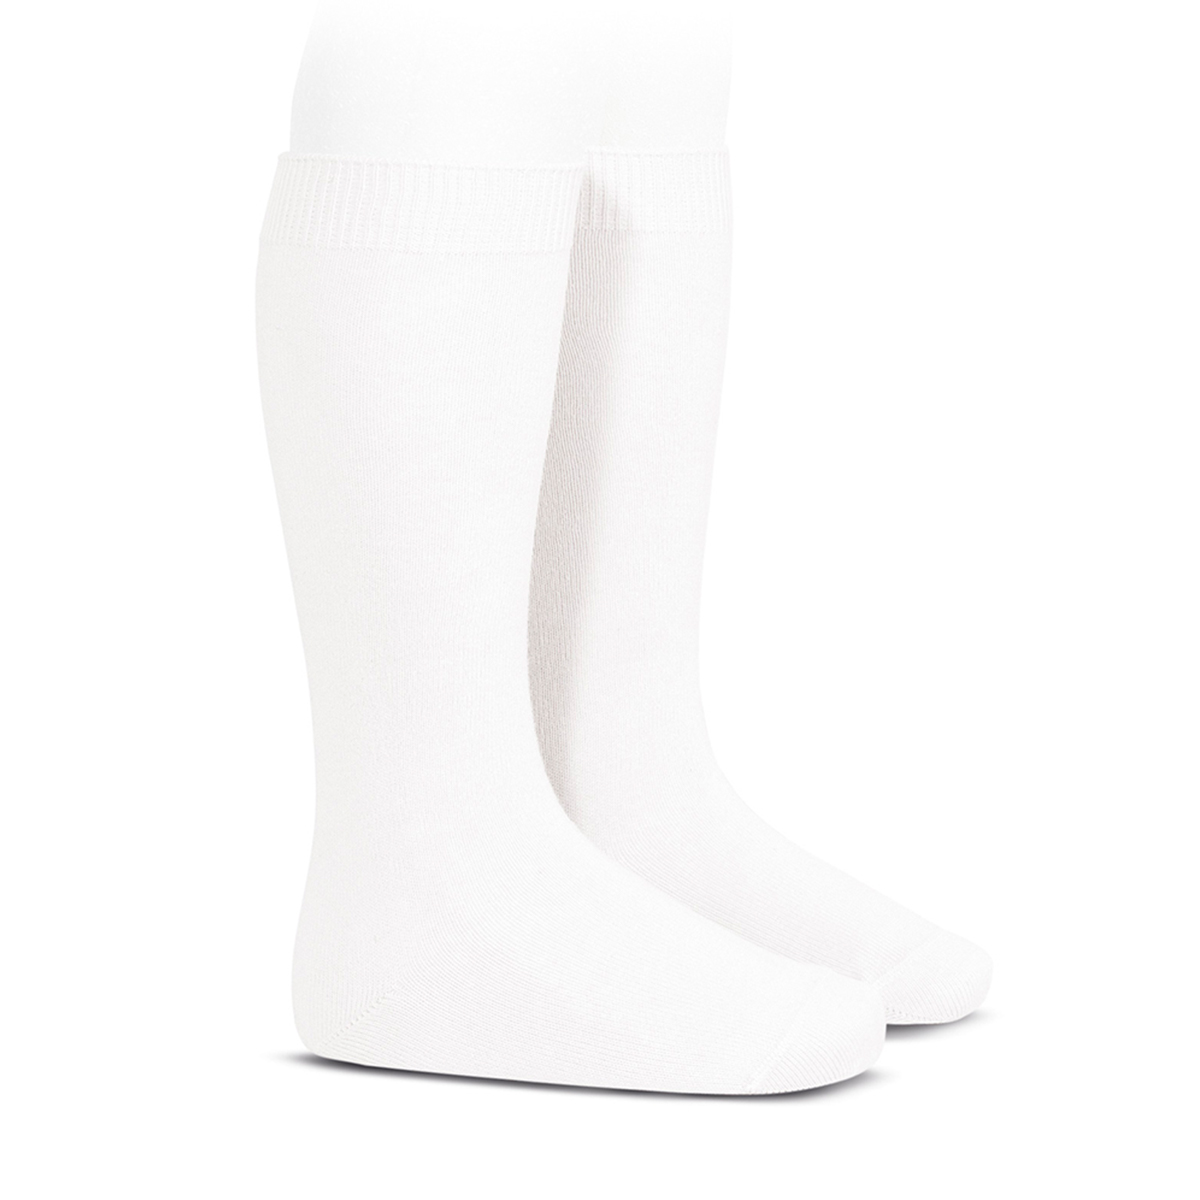 Condor Basic Plain Knee High Socks in White